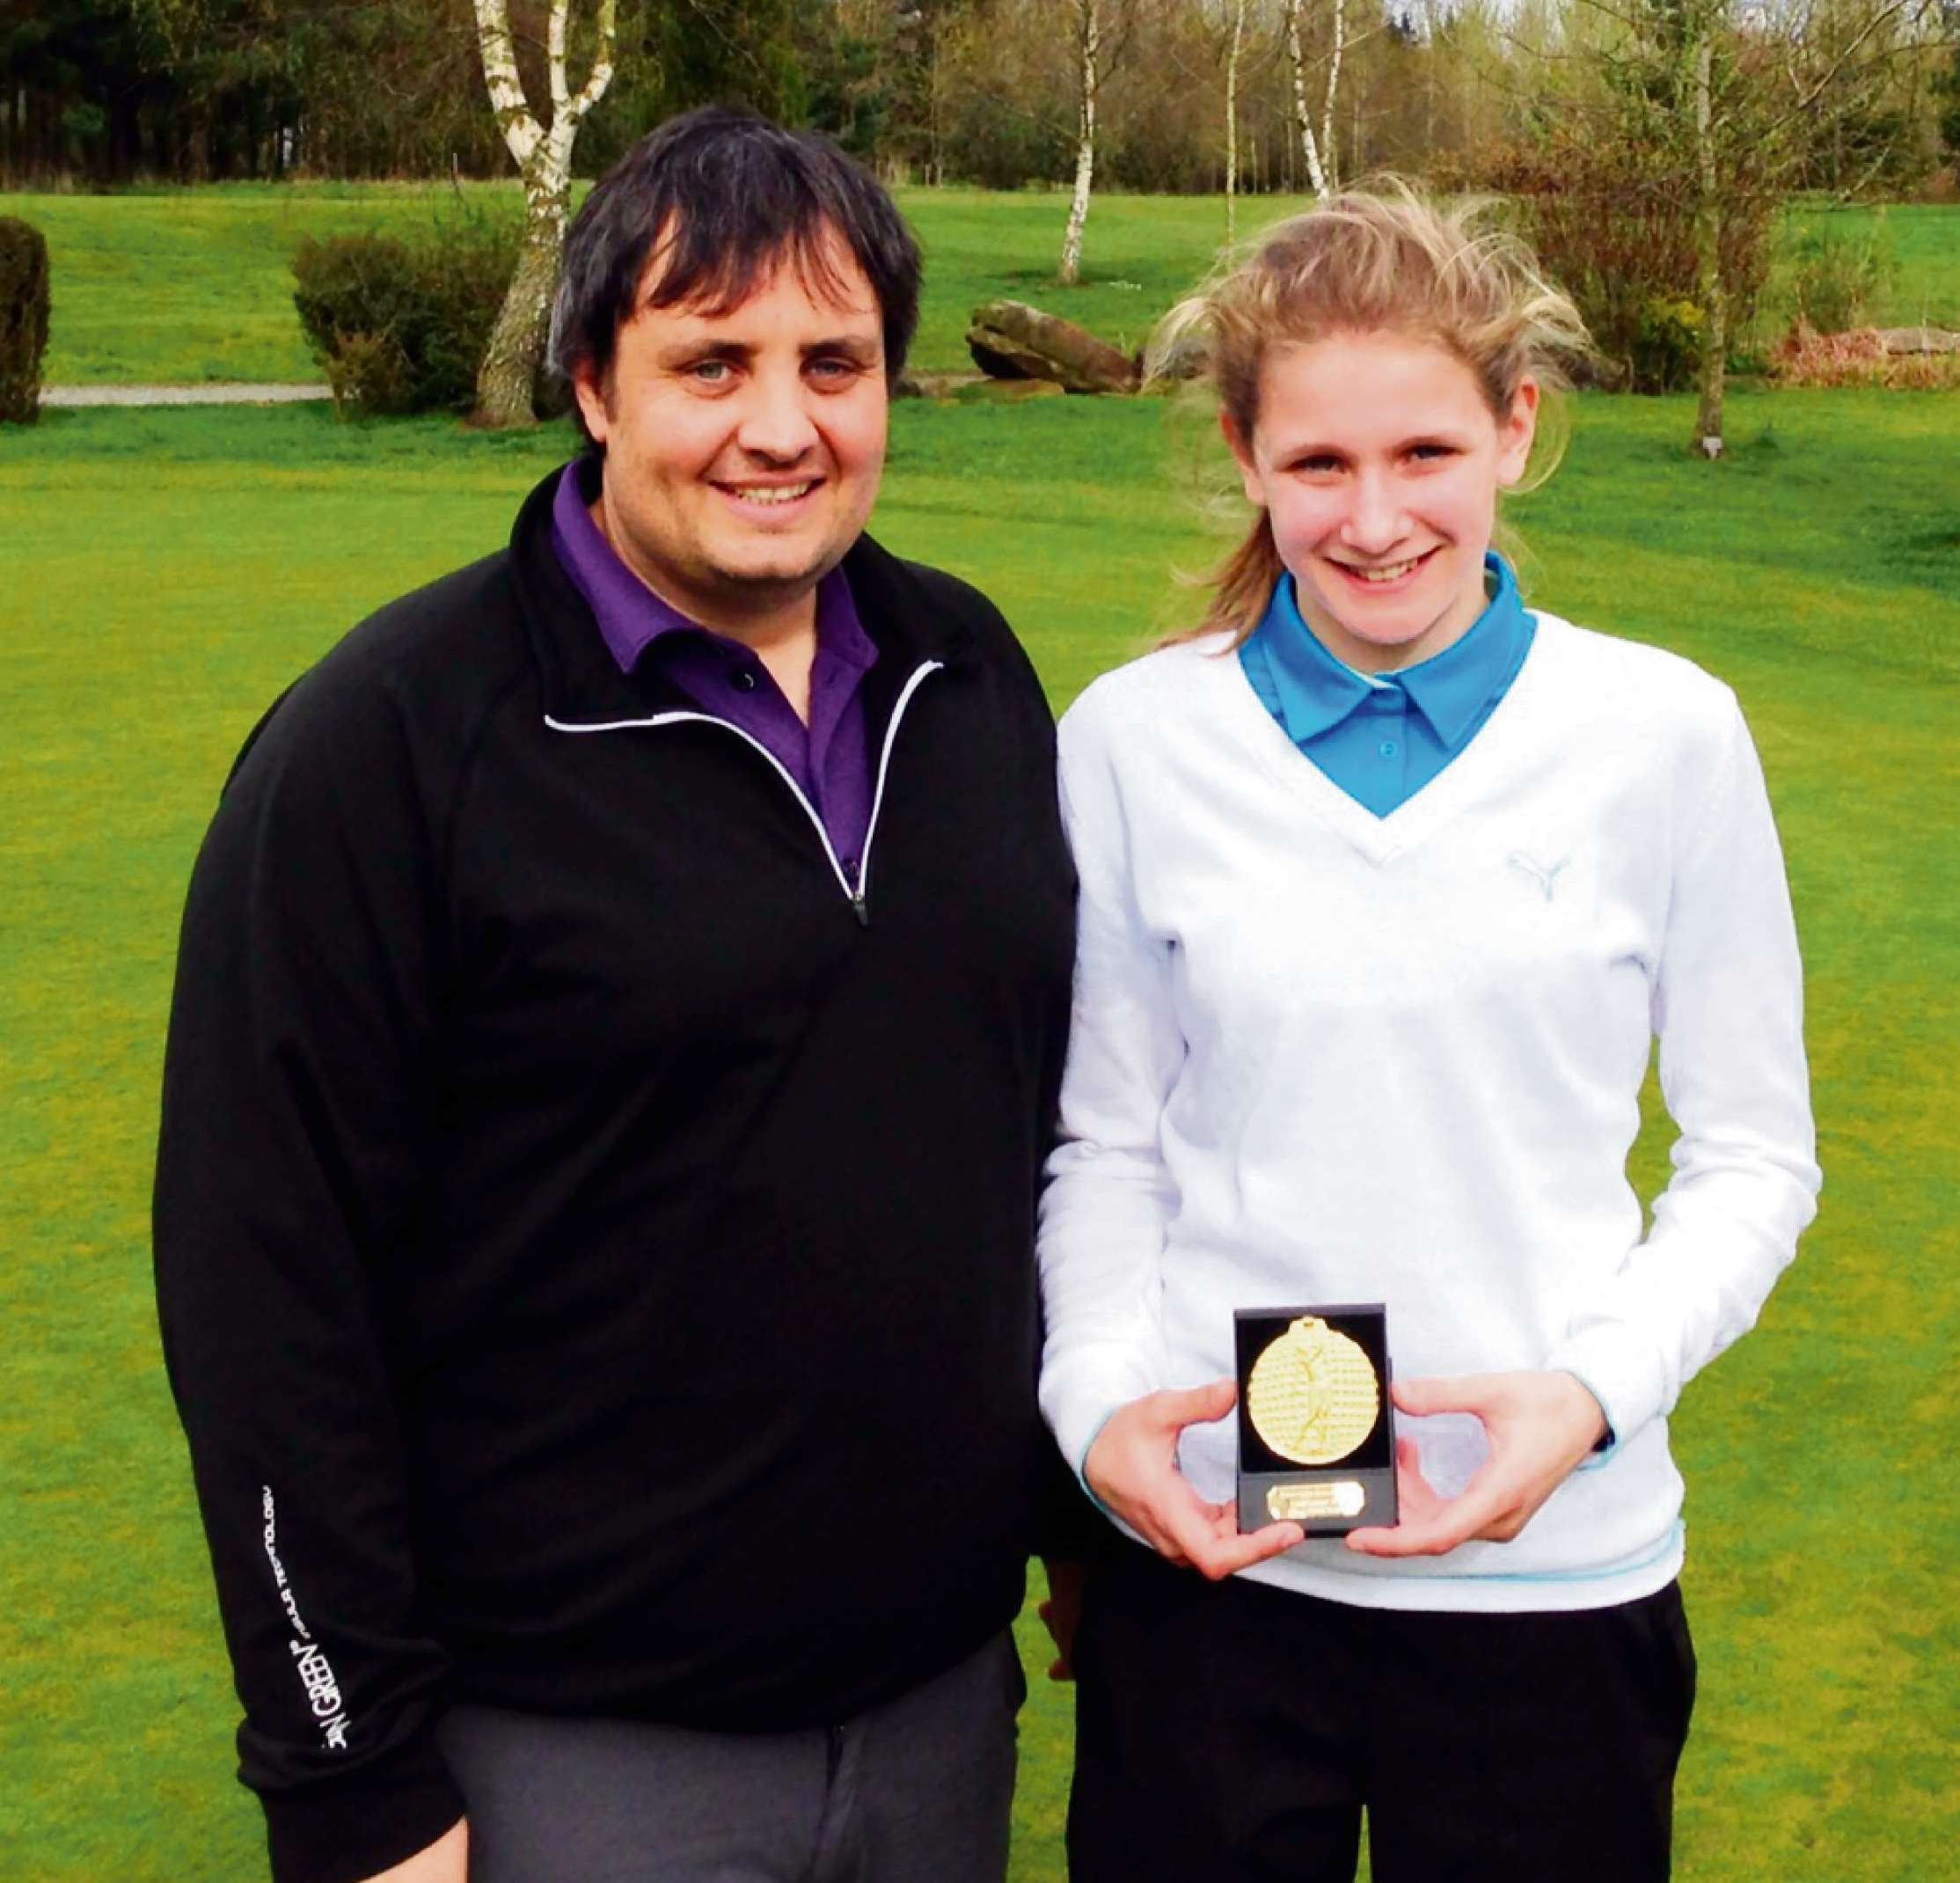 Emily Price with Kristian Wood, the tournament organiser and Lacon Childe School head of sport.